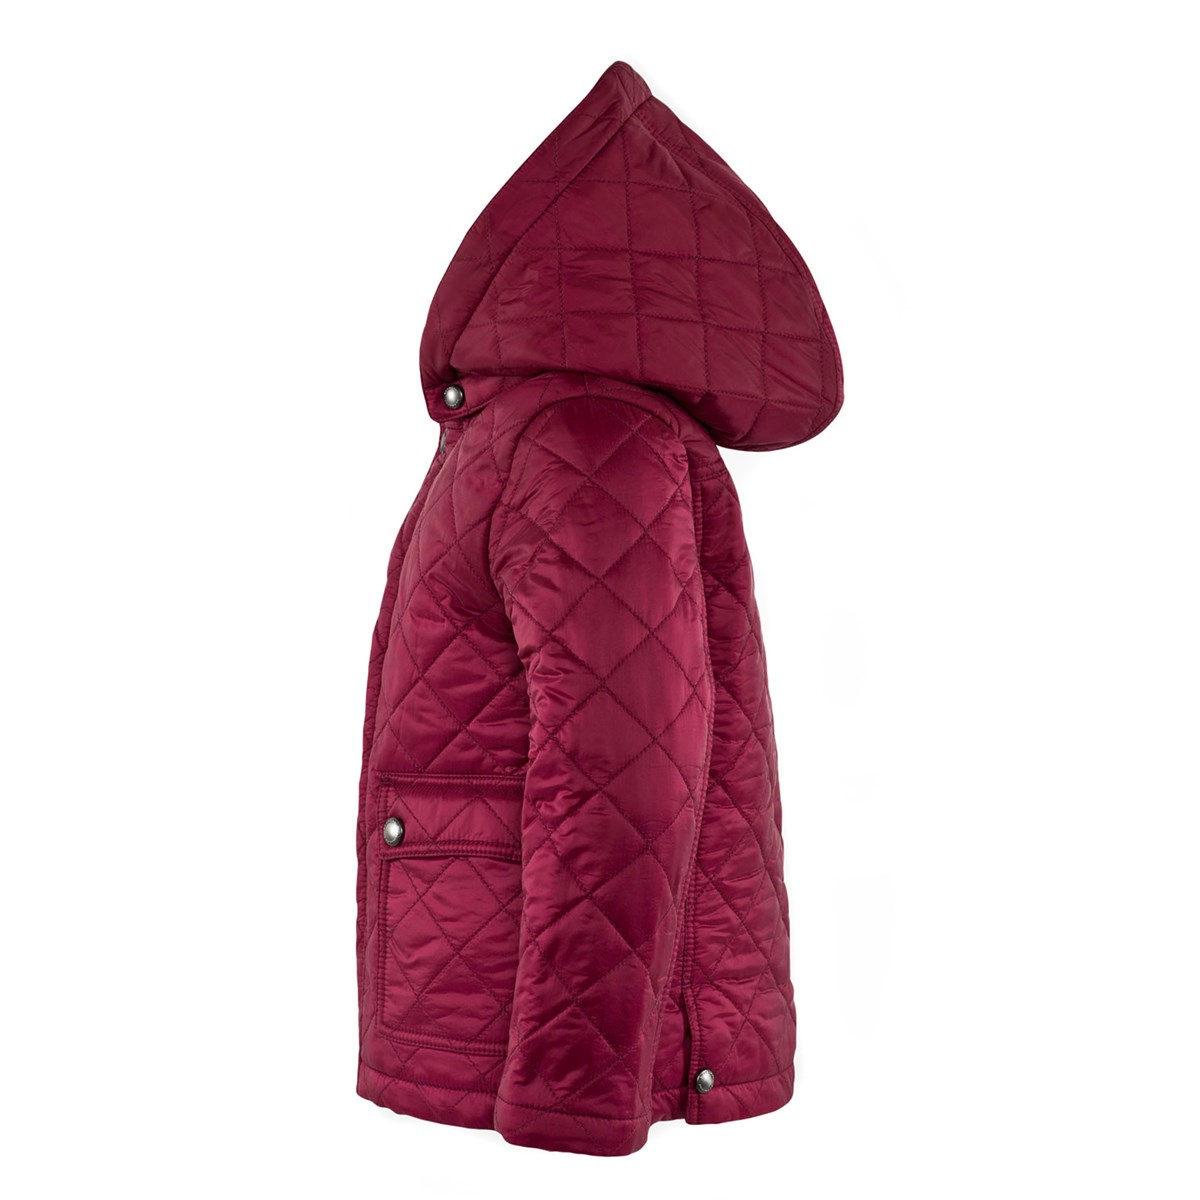 Burberry - Quilted Jacket with Check-Lined Hood Fritillary Pink -  Babyshop.com 867da13e07